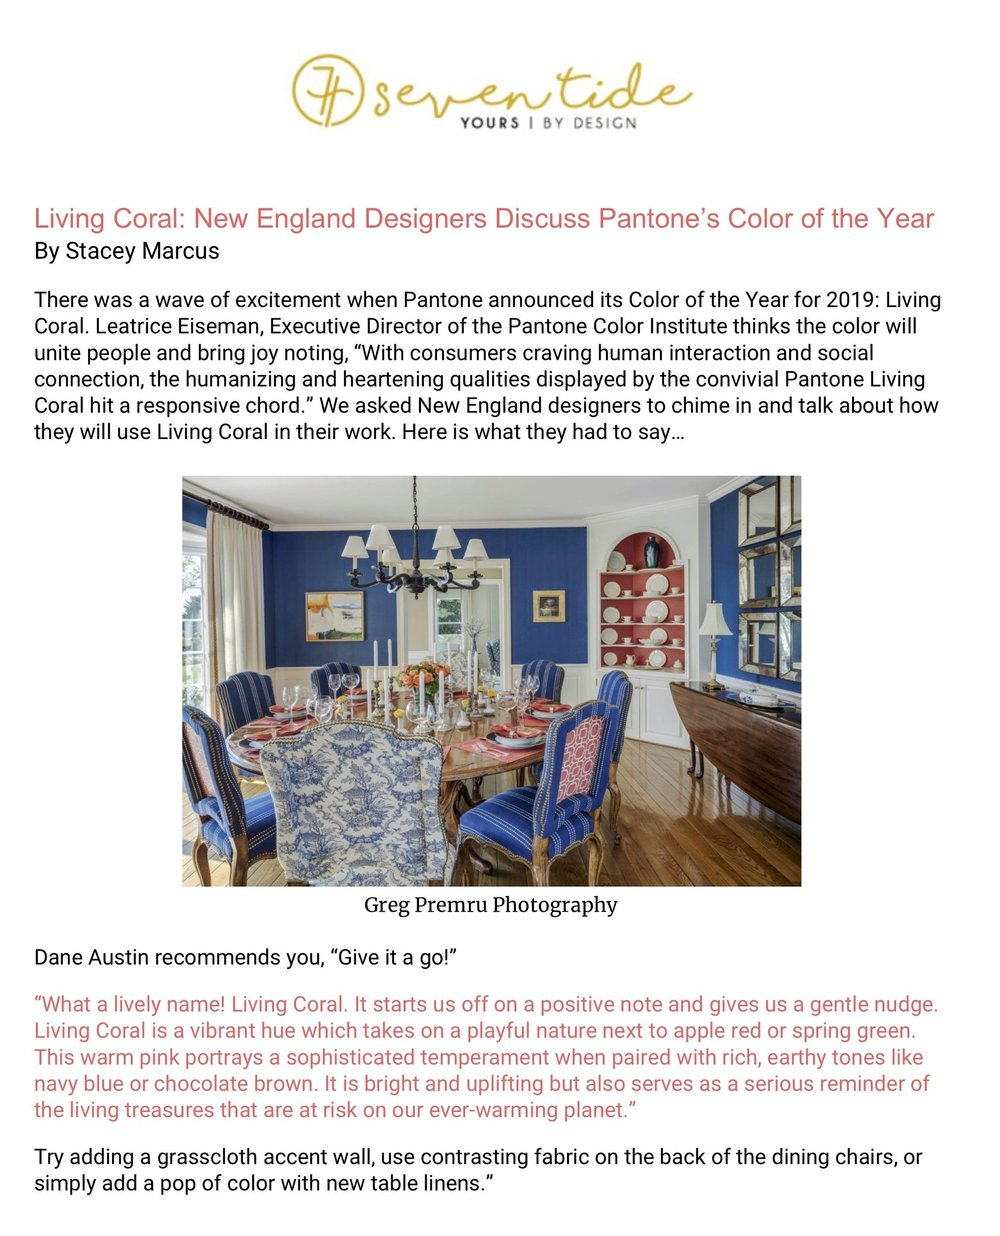 Dane Austin Design featured in Seven Tide: Living Coral, January 2019